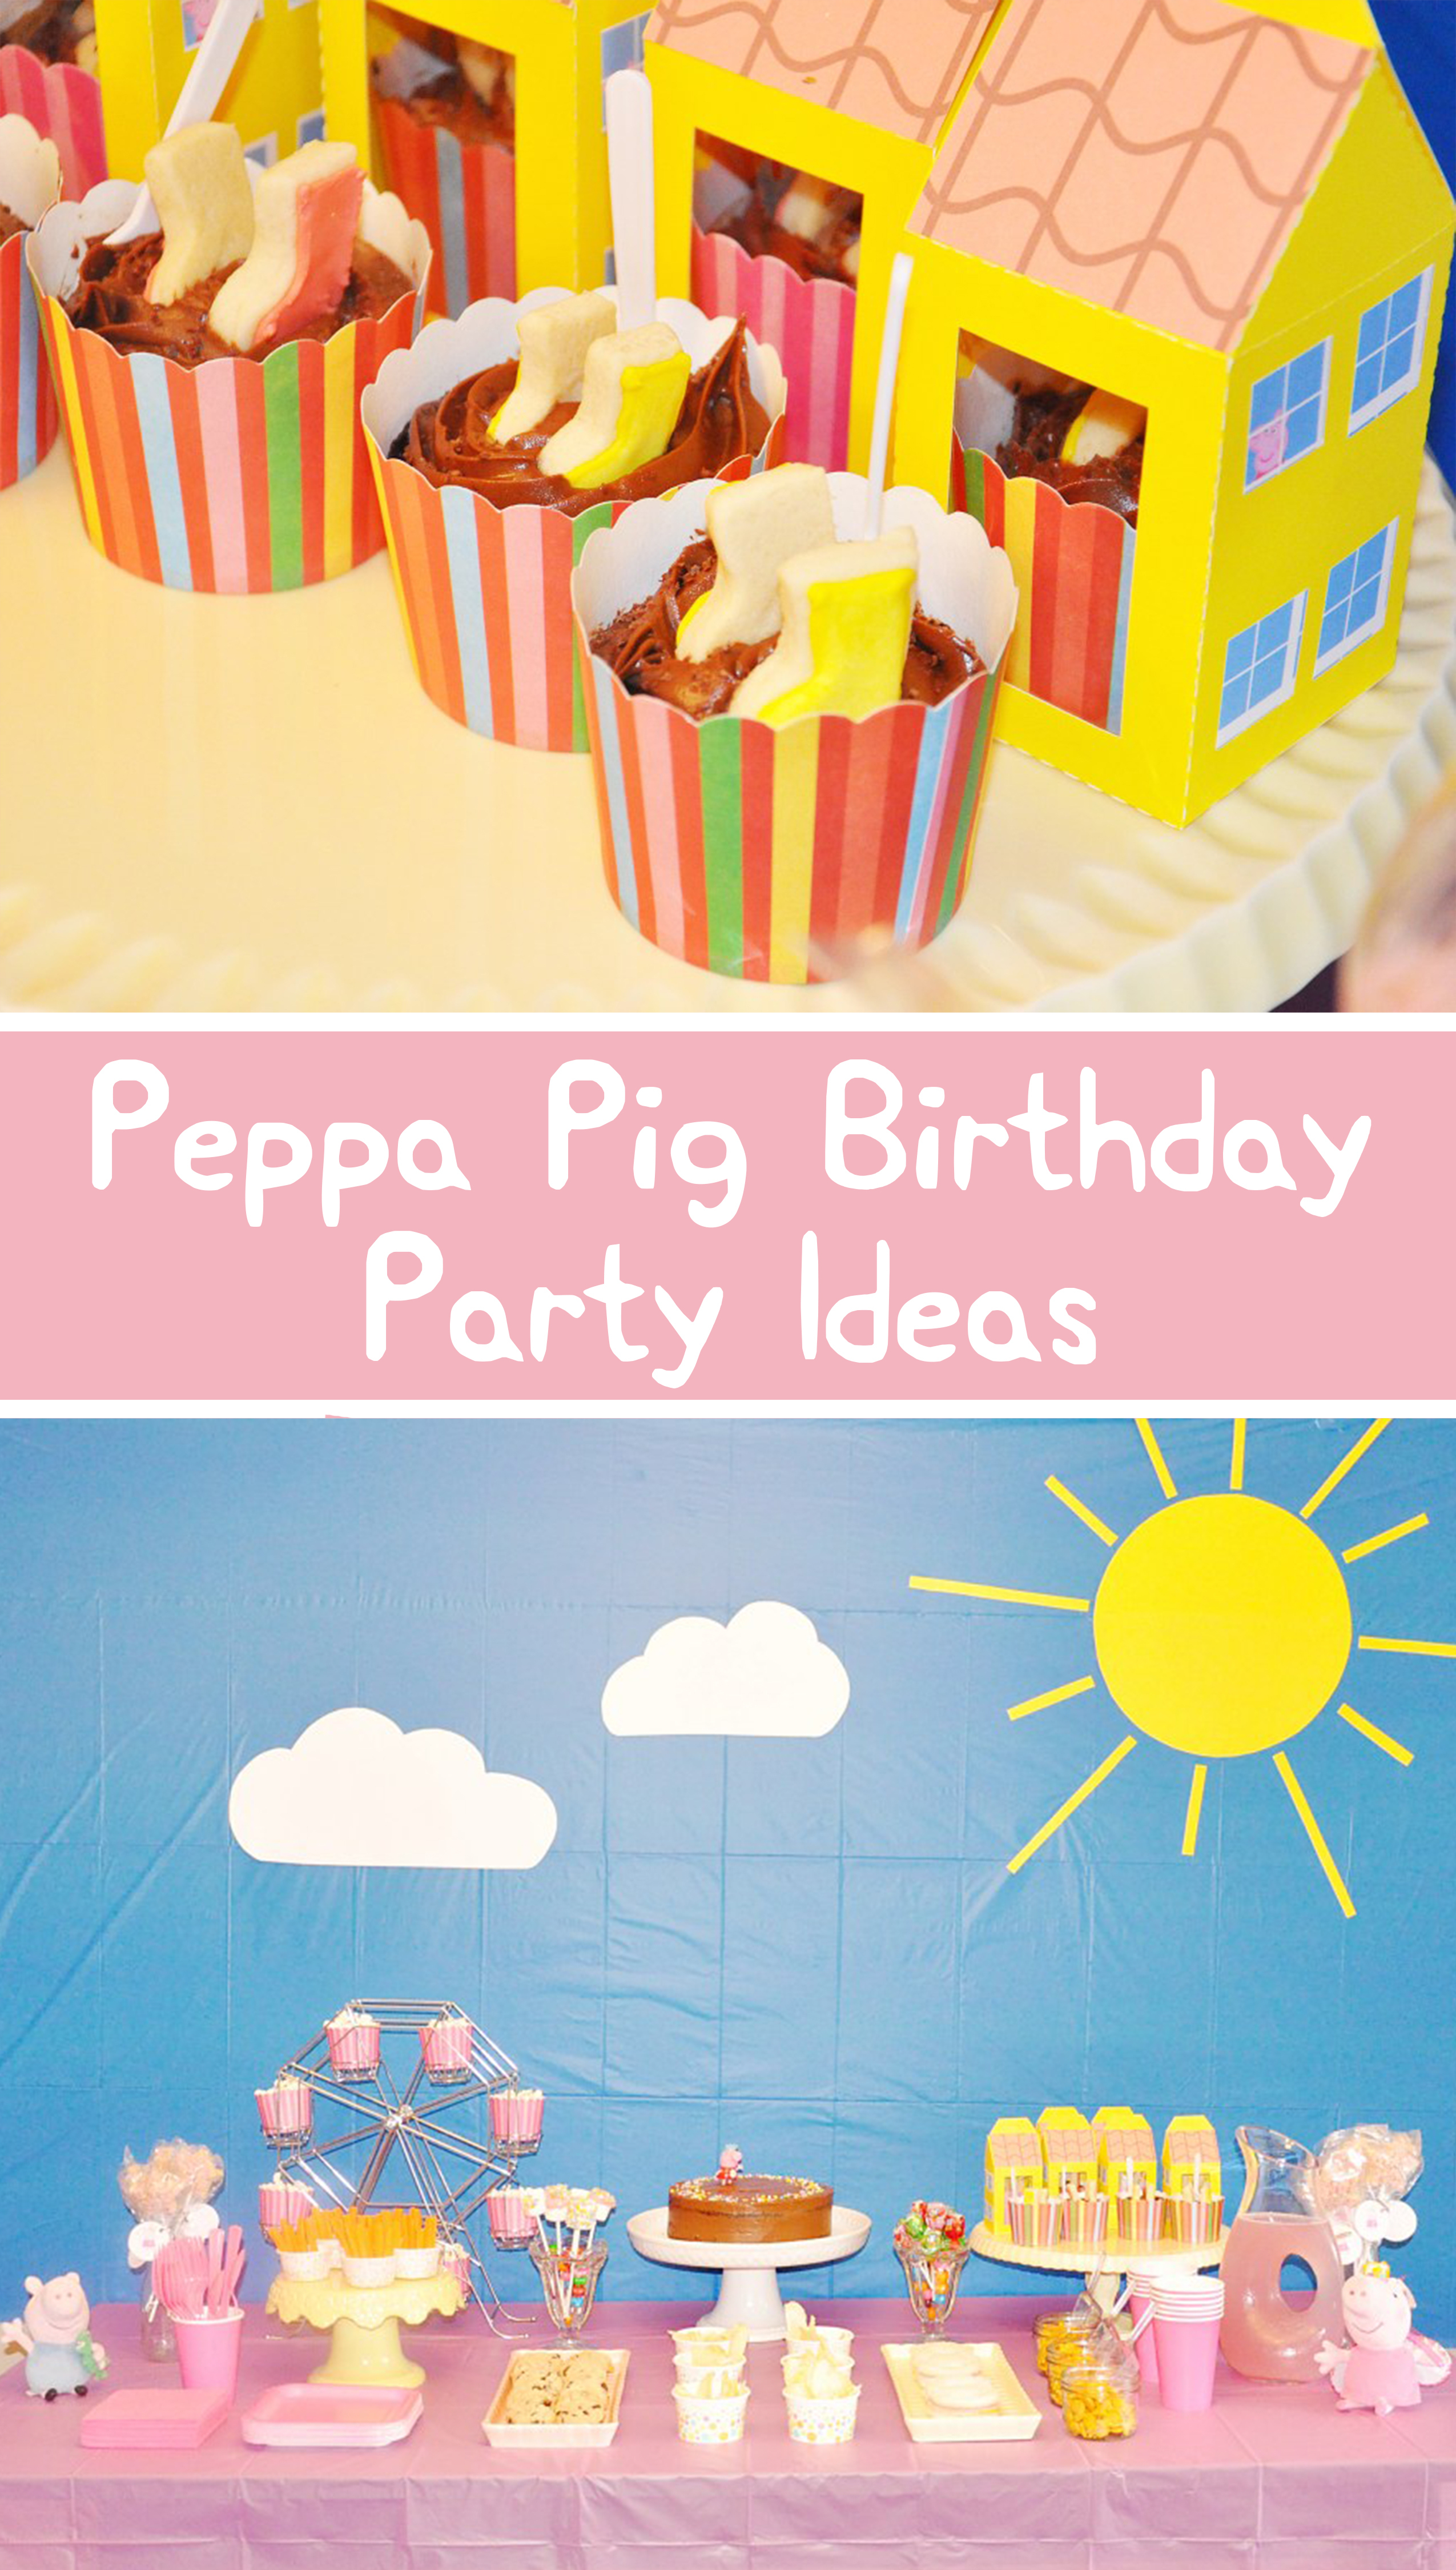 Peppa Pig Birthday Party! (Simple Diy Ideas & Free Printables - Peppa Pig Birthday Banner Printable Free